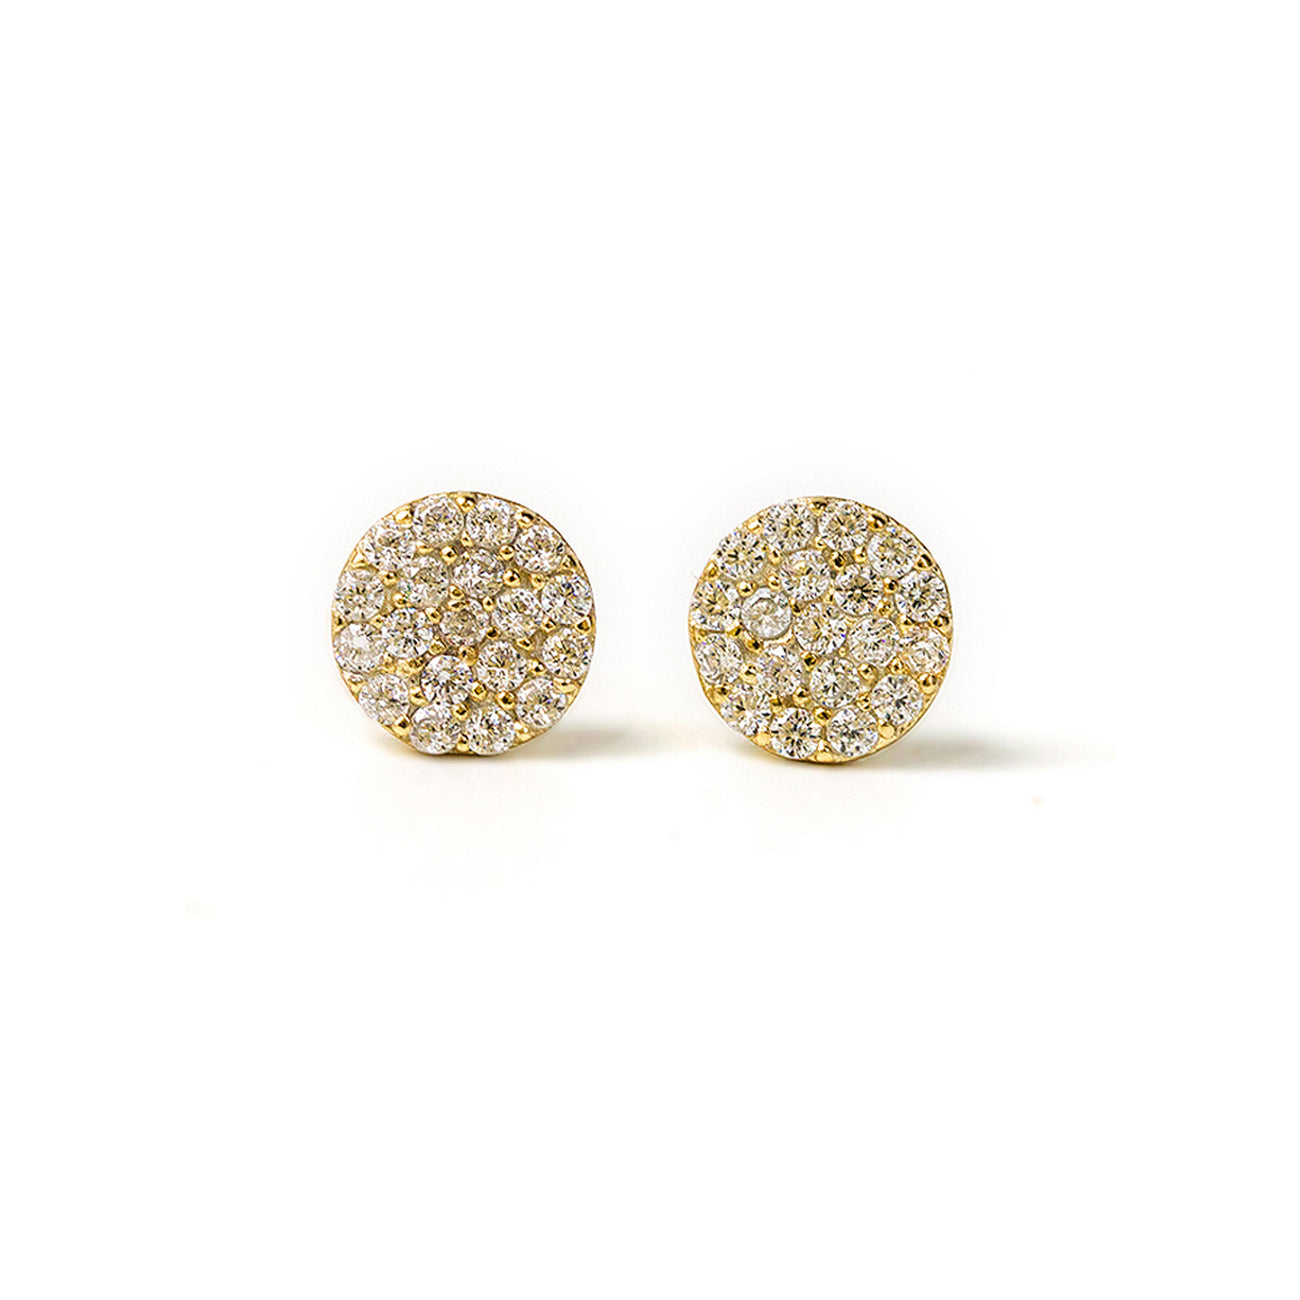 Small Gold Pave CZ Disc Stud Earrings